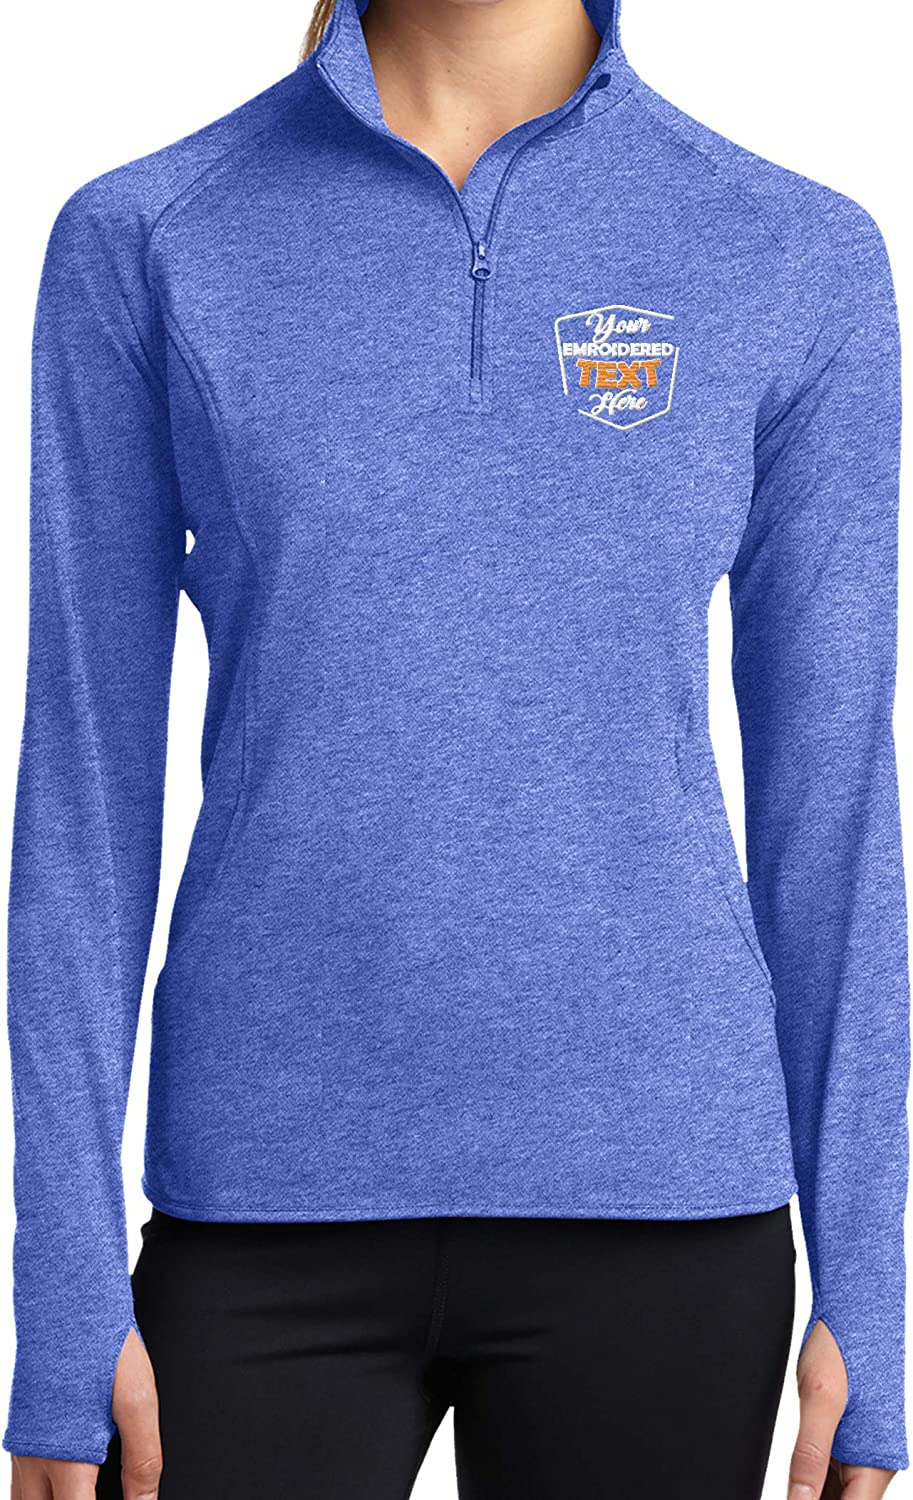 Personalized Embroidered Zip online shopping Pullover Custom Add Text Half overseas Your